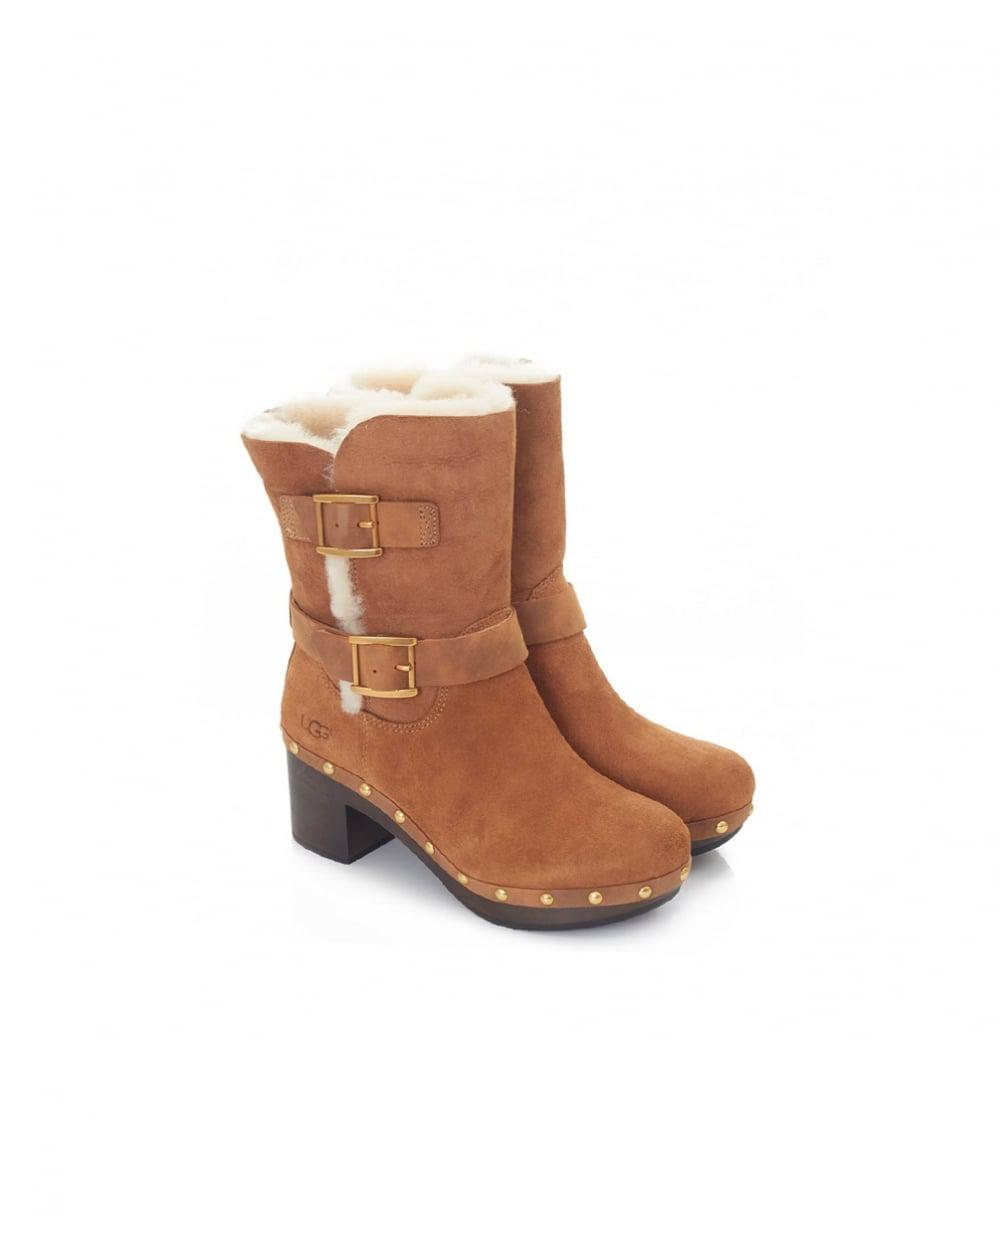 0f560fd021f Lyst - UGG Brea Clog Inspired Low Heel Boots in Brown